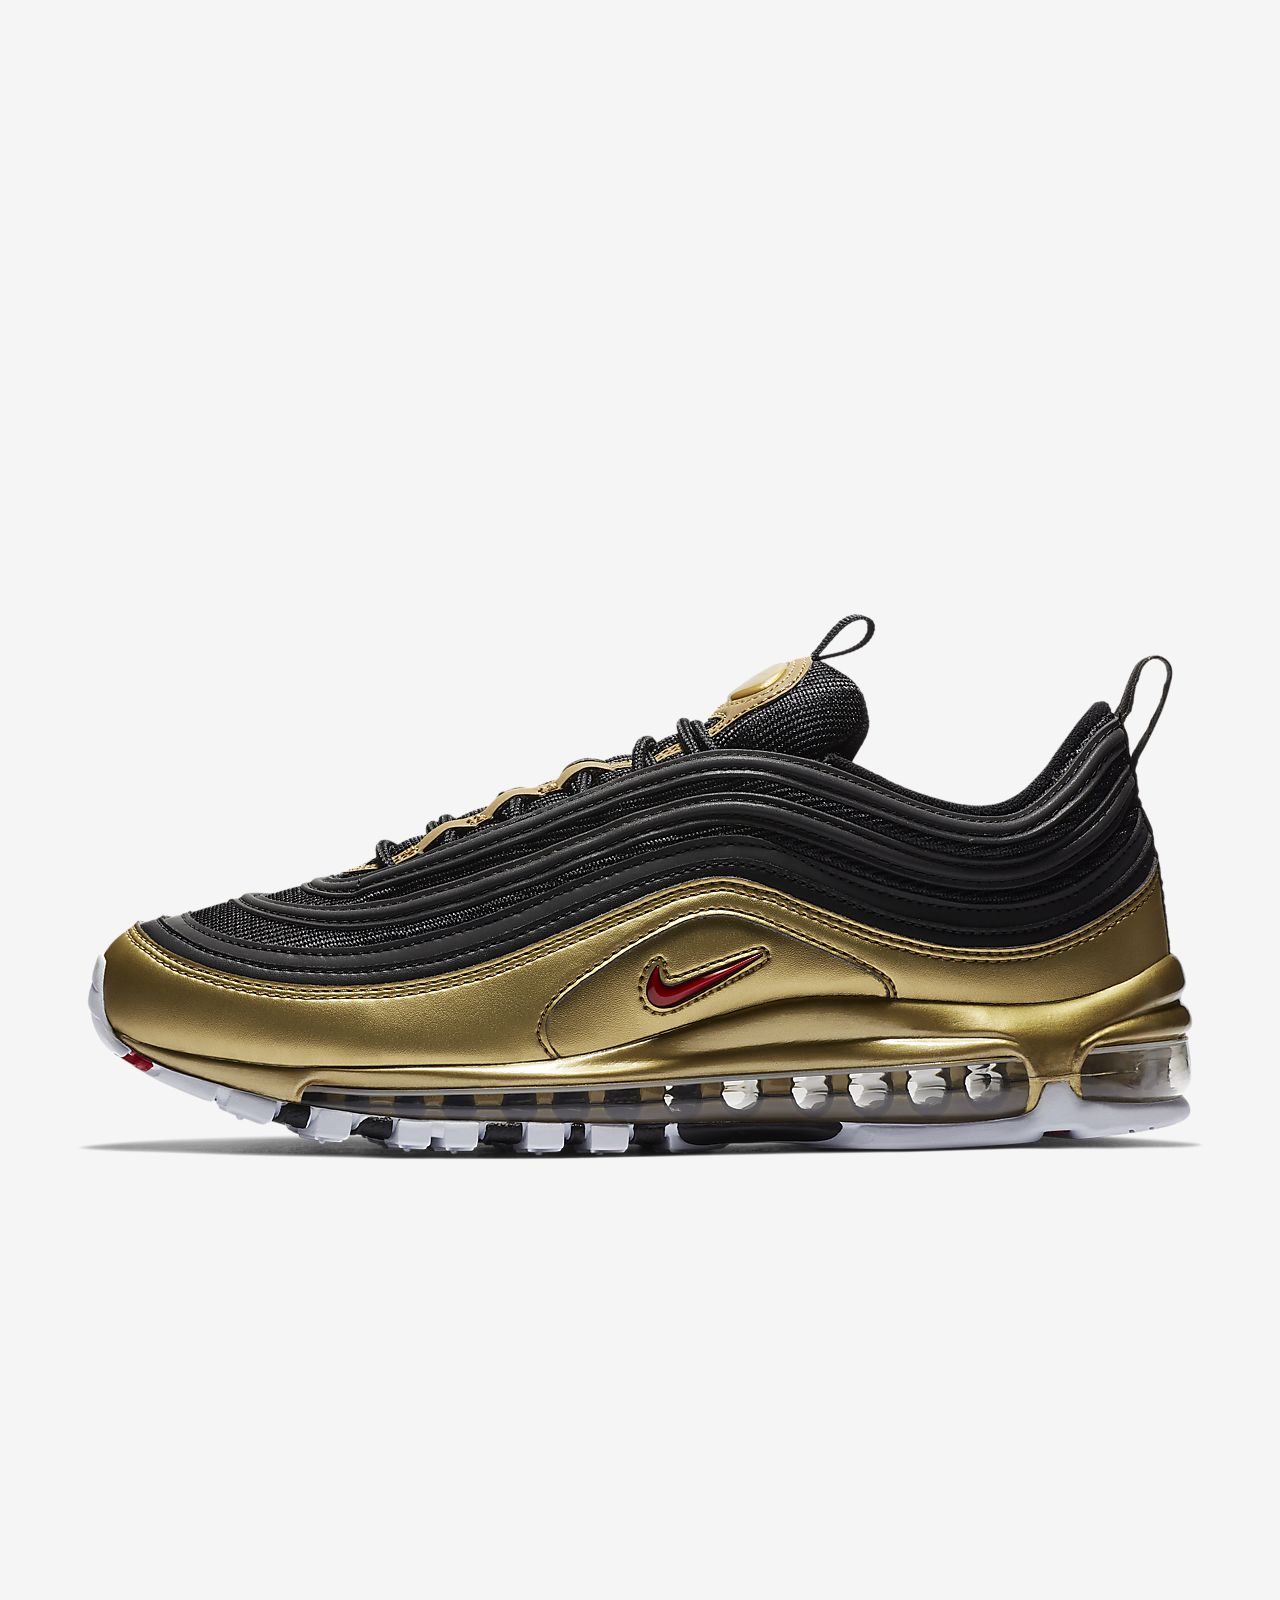 8abdf3321e6 Nike Air Max 97 QS Men s Shoe. Nike.com